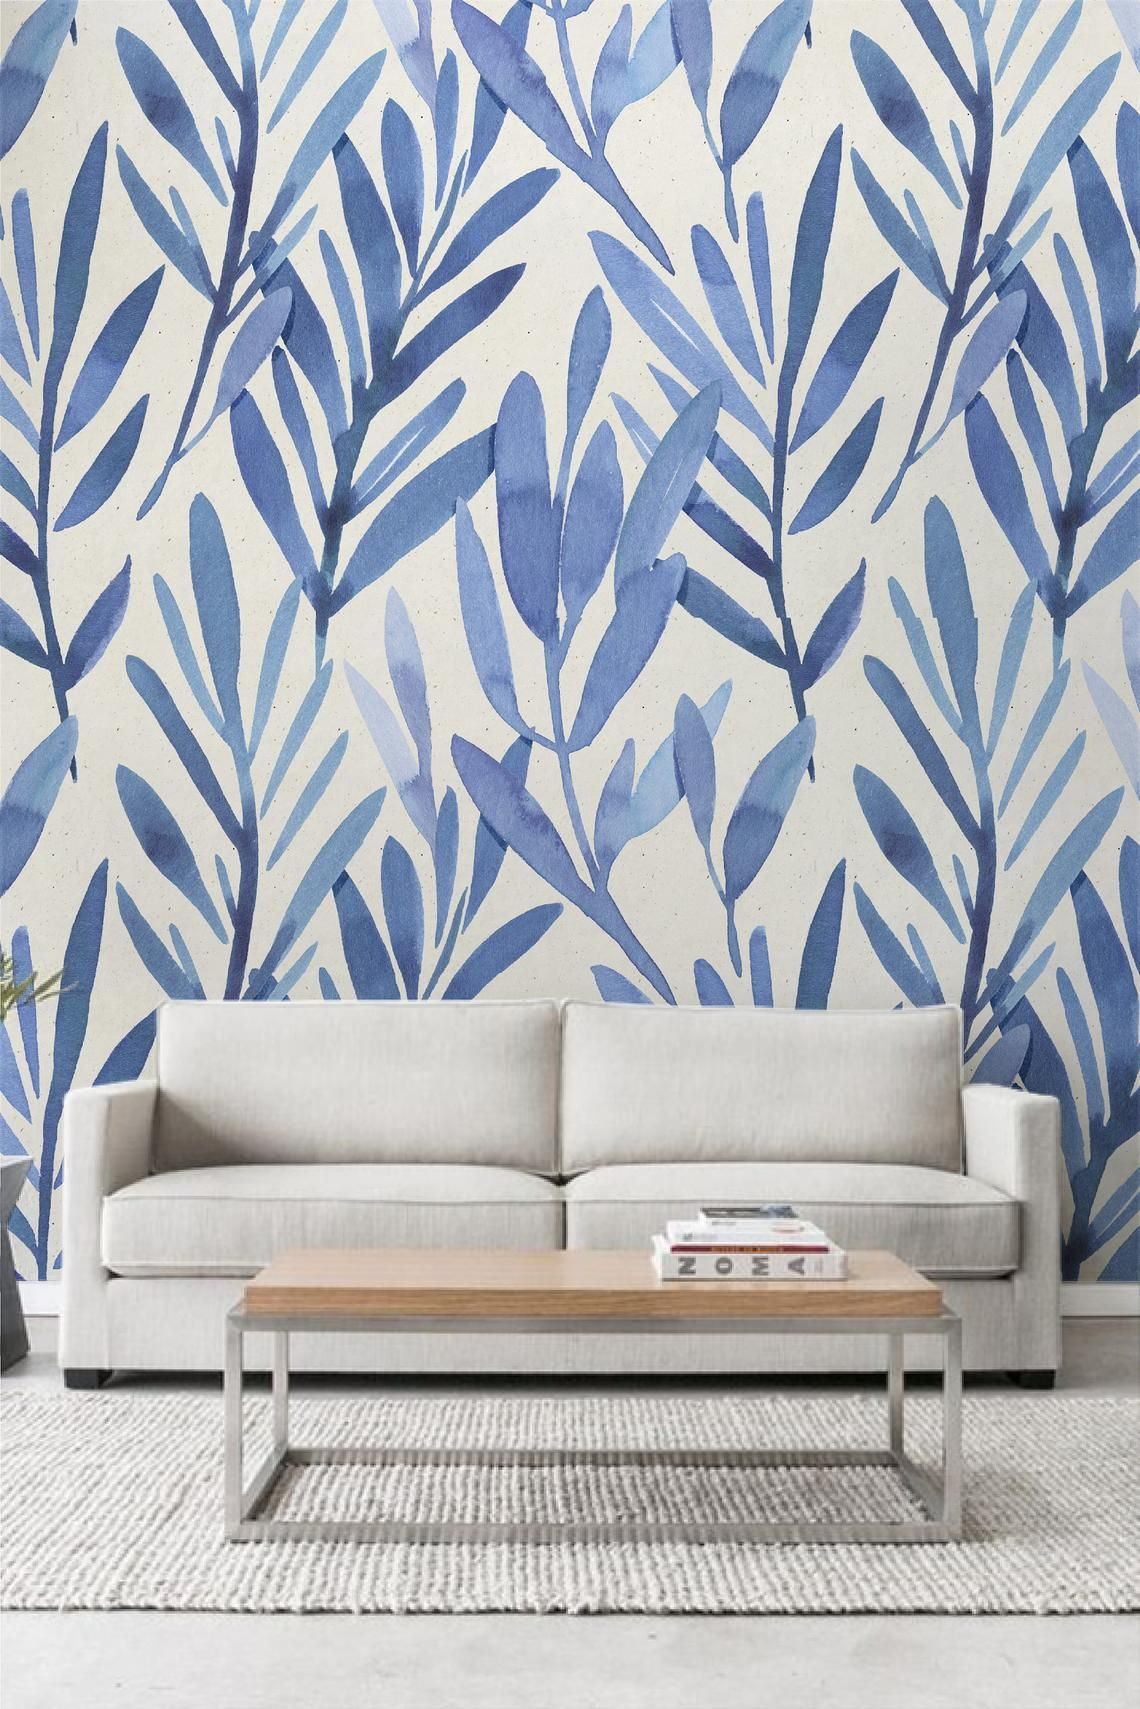 Wall mural with blue watercolor leaves, Temporary wall